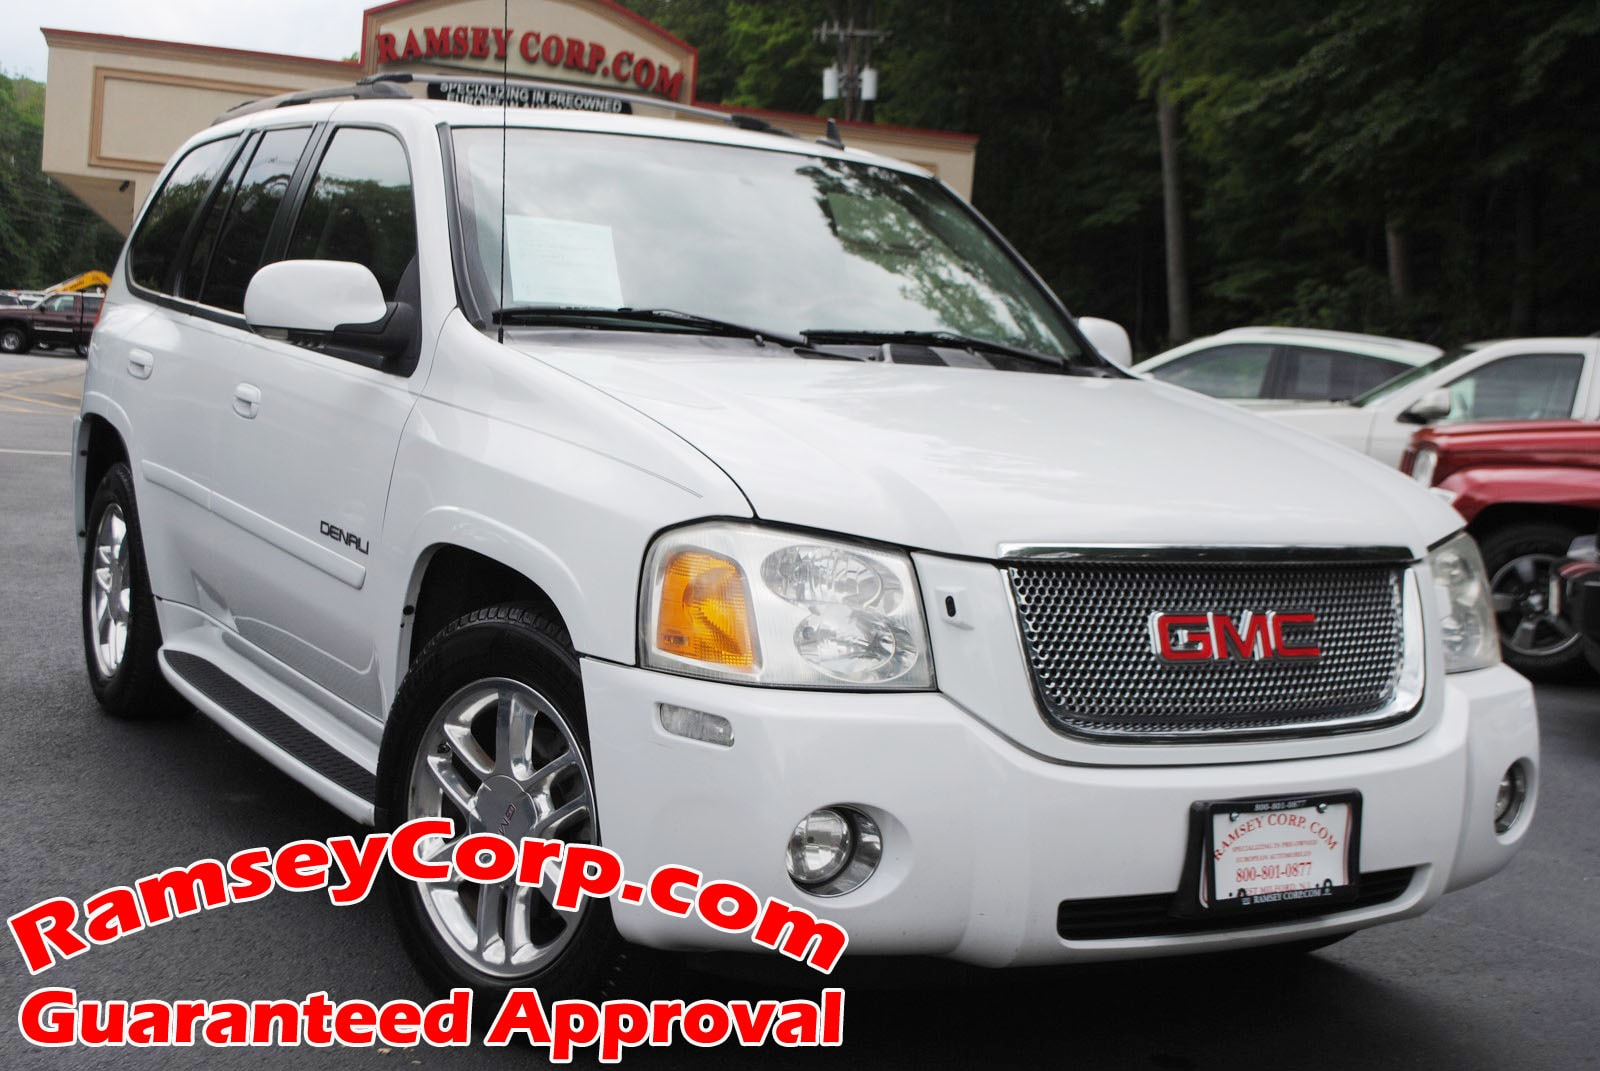 Used 2007 GMC Envoy For Sale   West Milford NJ 2007 GMC Envoy Denali 5 3 SUV